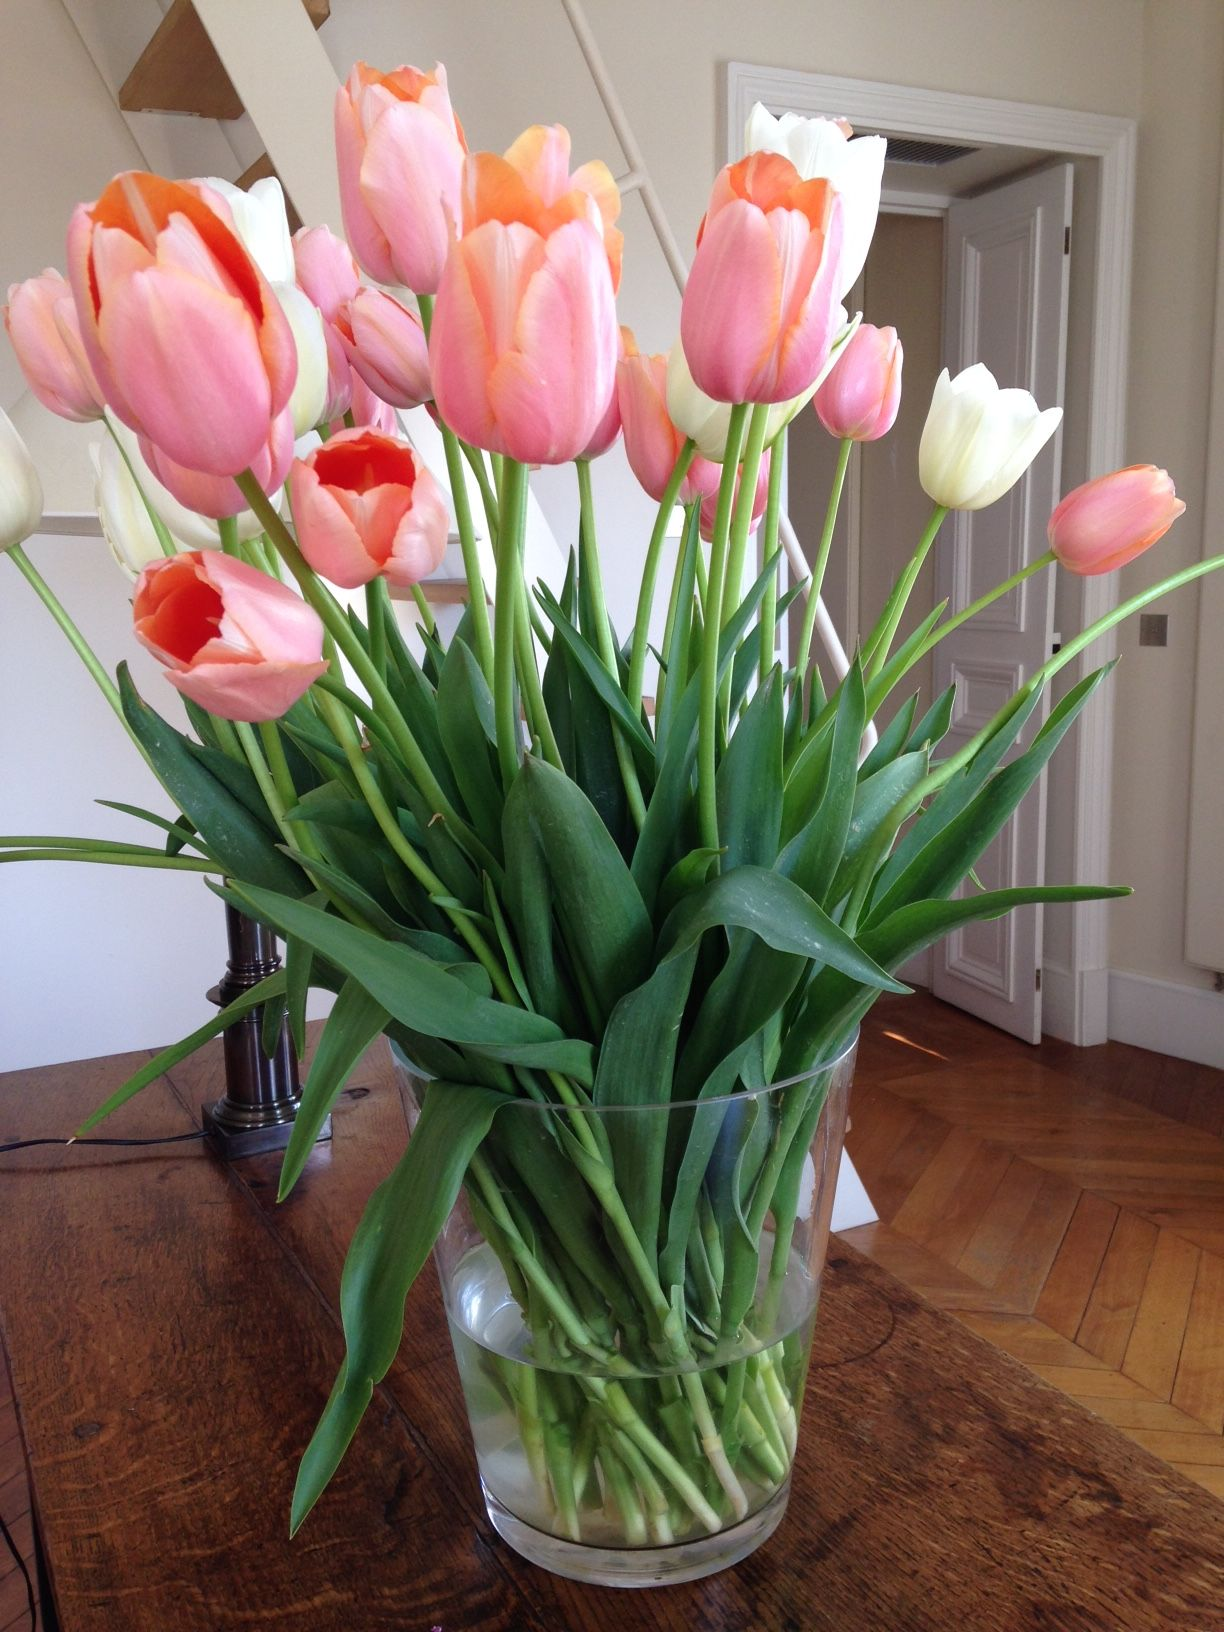 Flowers in vase change water - Ina Garten S Three Tips For Making Tulips Last First Unlike With Most Flowers